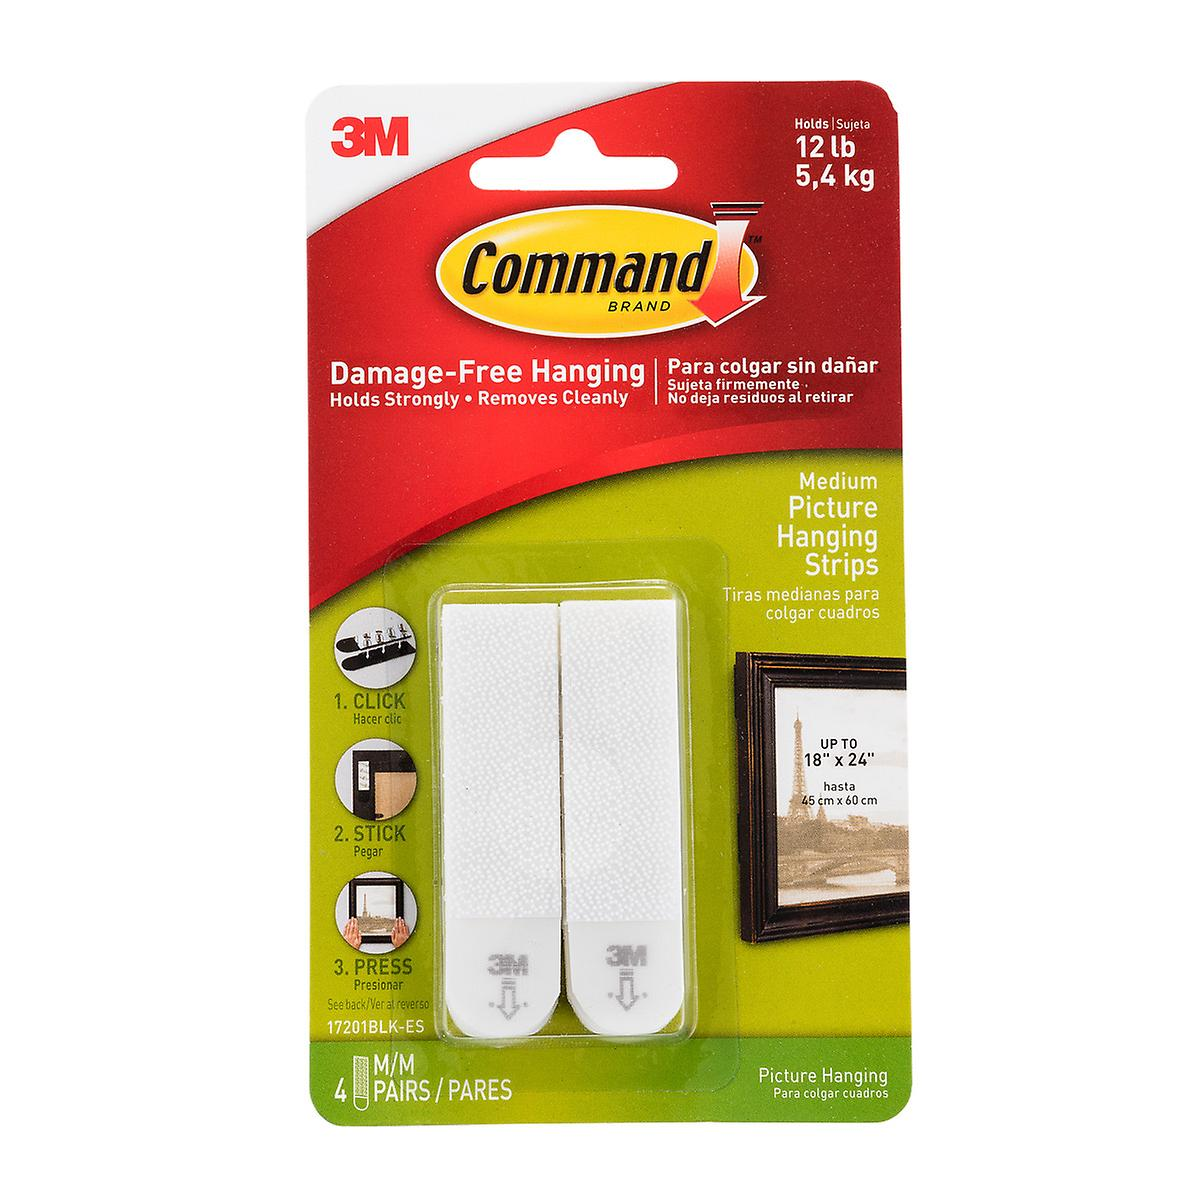 3m command adhesive picture hanging strips the container. Black Bedroom Furniture Sets. Home Design Ideas